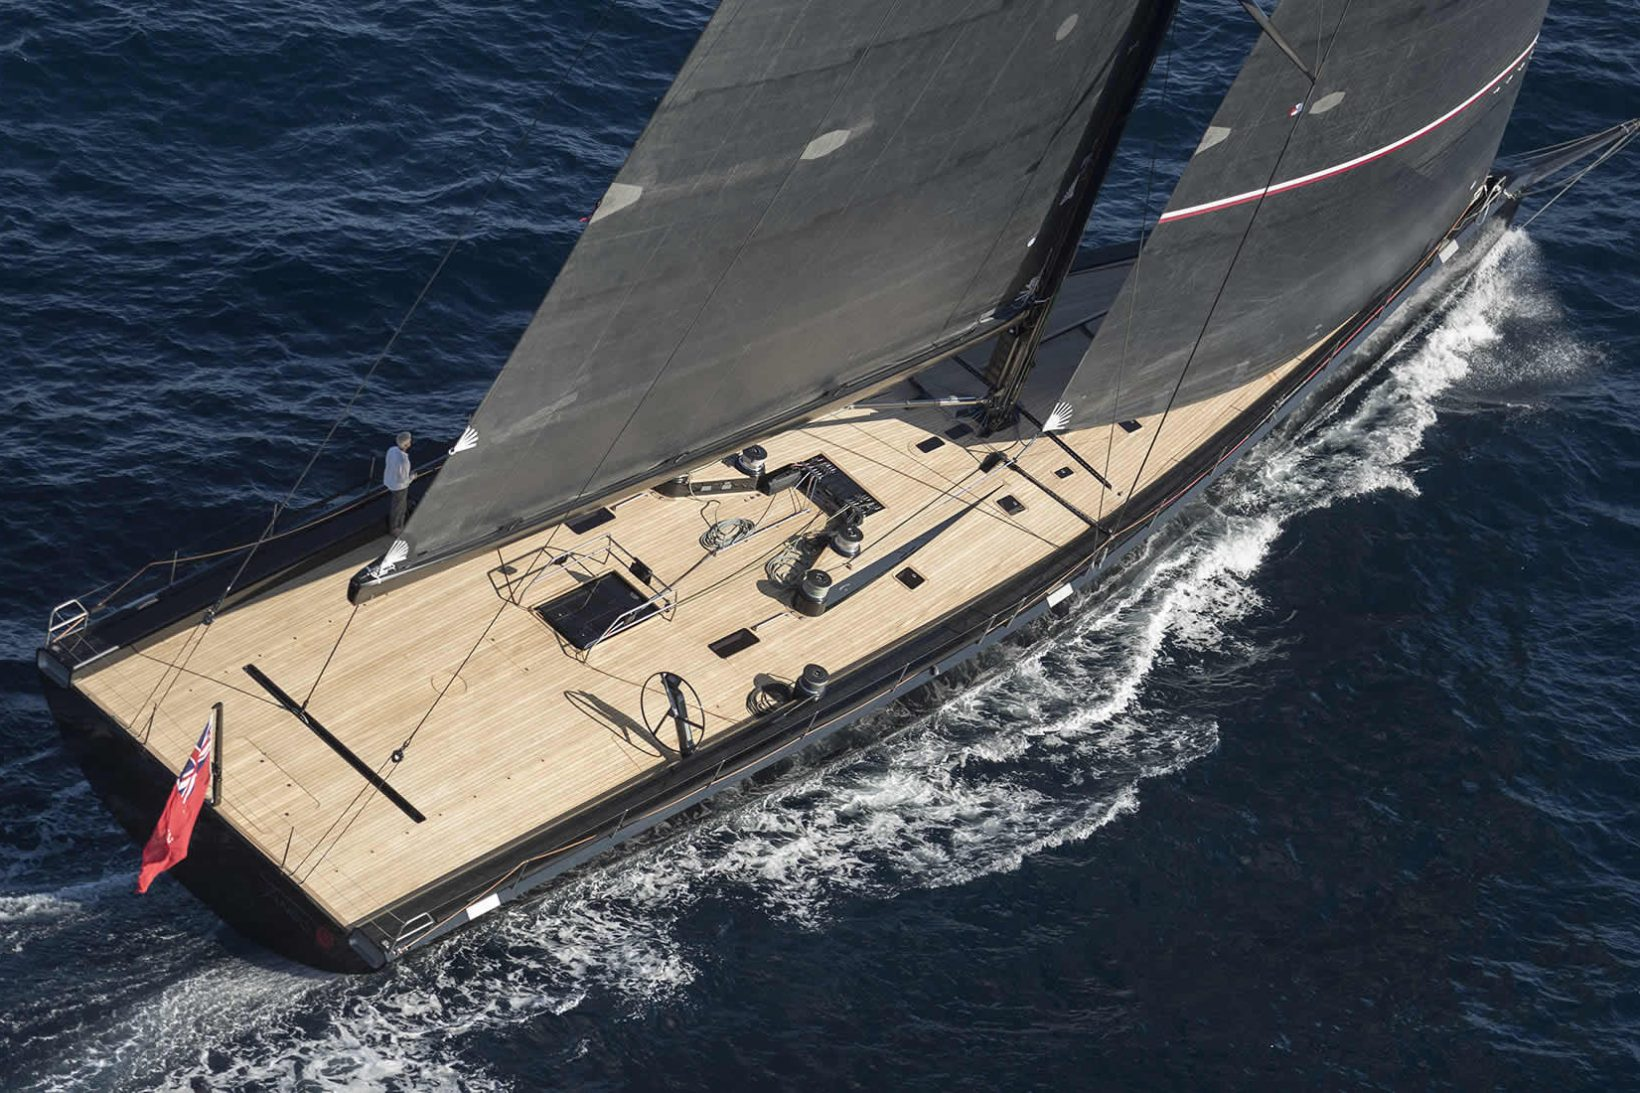 Big alliances in the yachting industry are taking shape